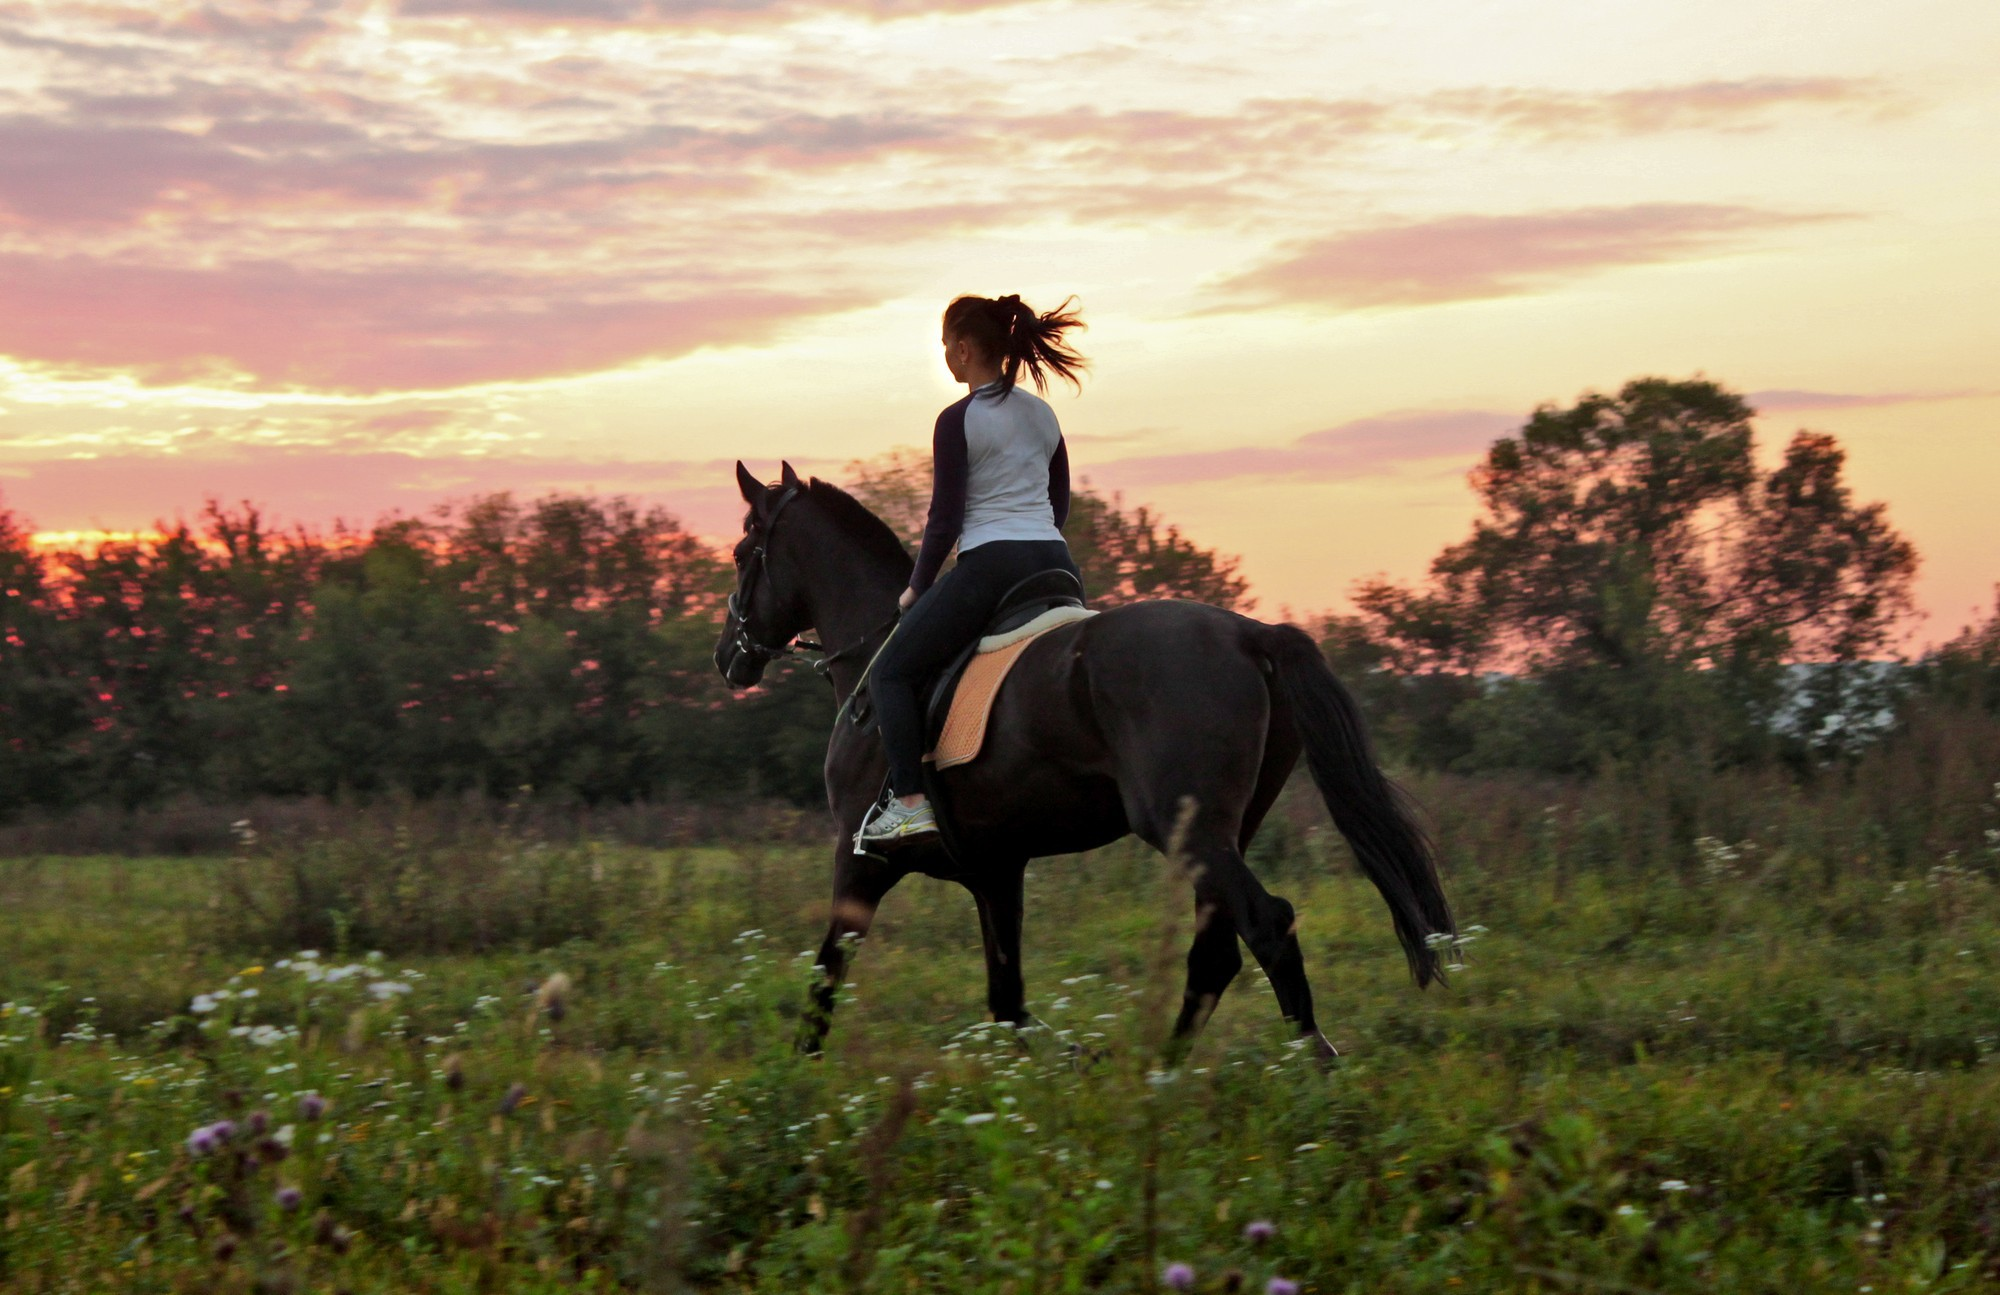 Horse Riding Pics, Photography Collection